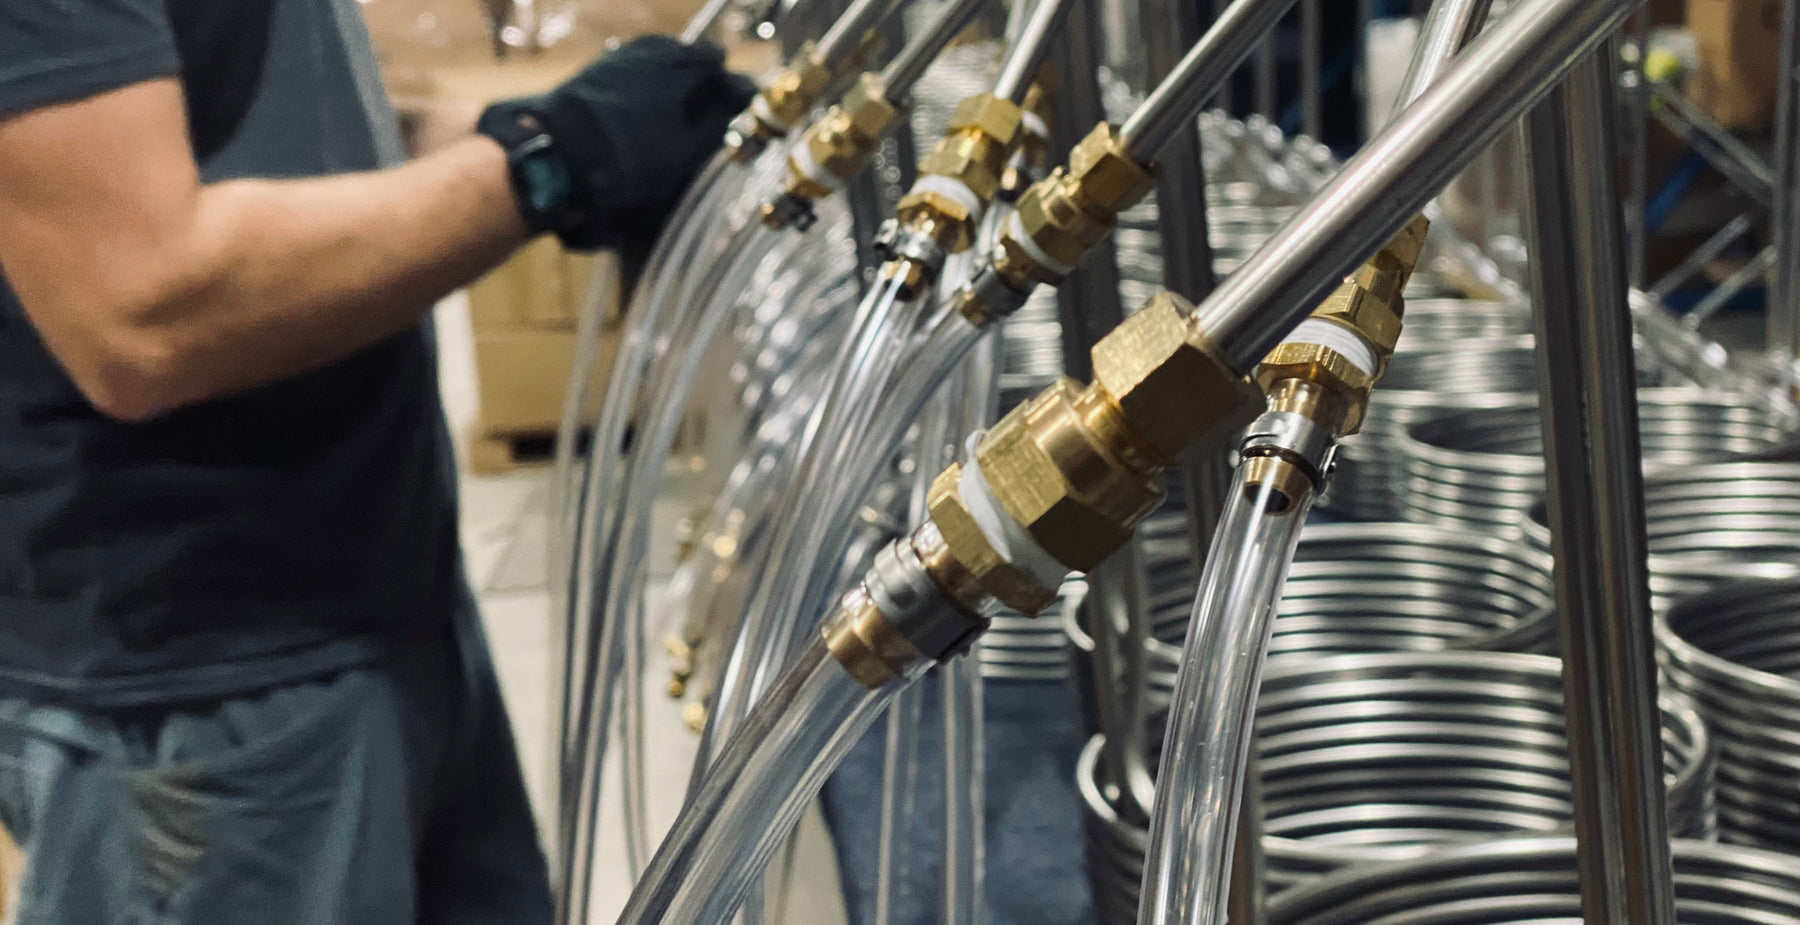 How to install compression fittings on your immersion chiller